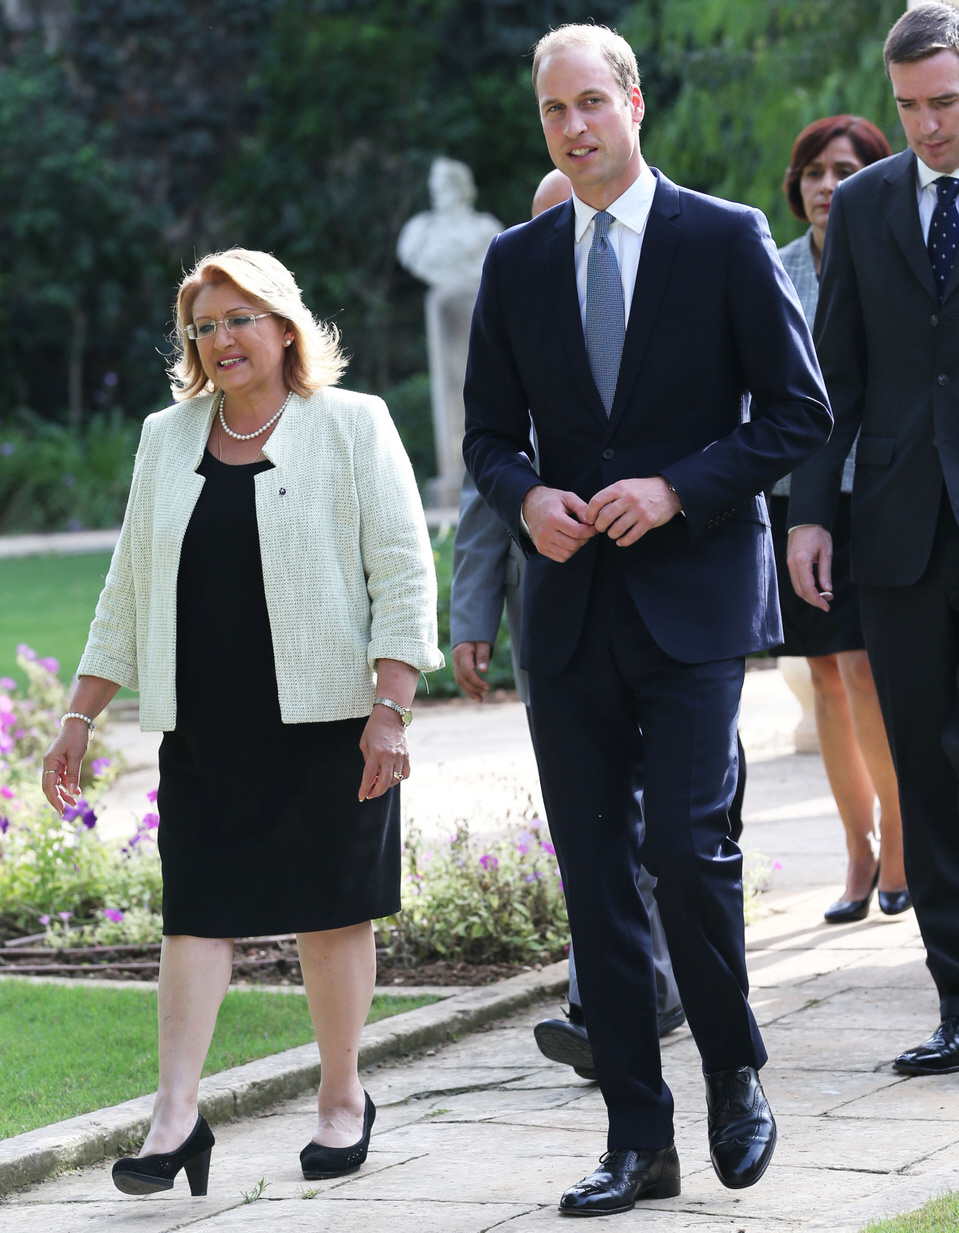 Prince William tours Malta with Duchess Kate's assistant Rebecca Deacon